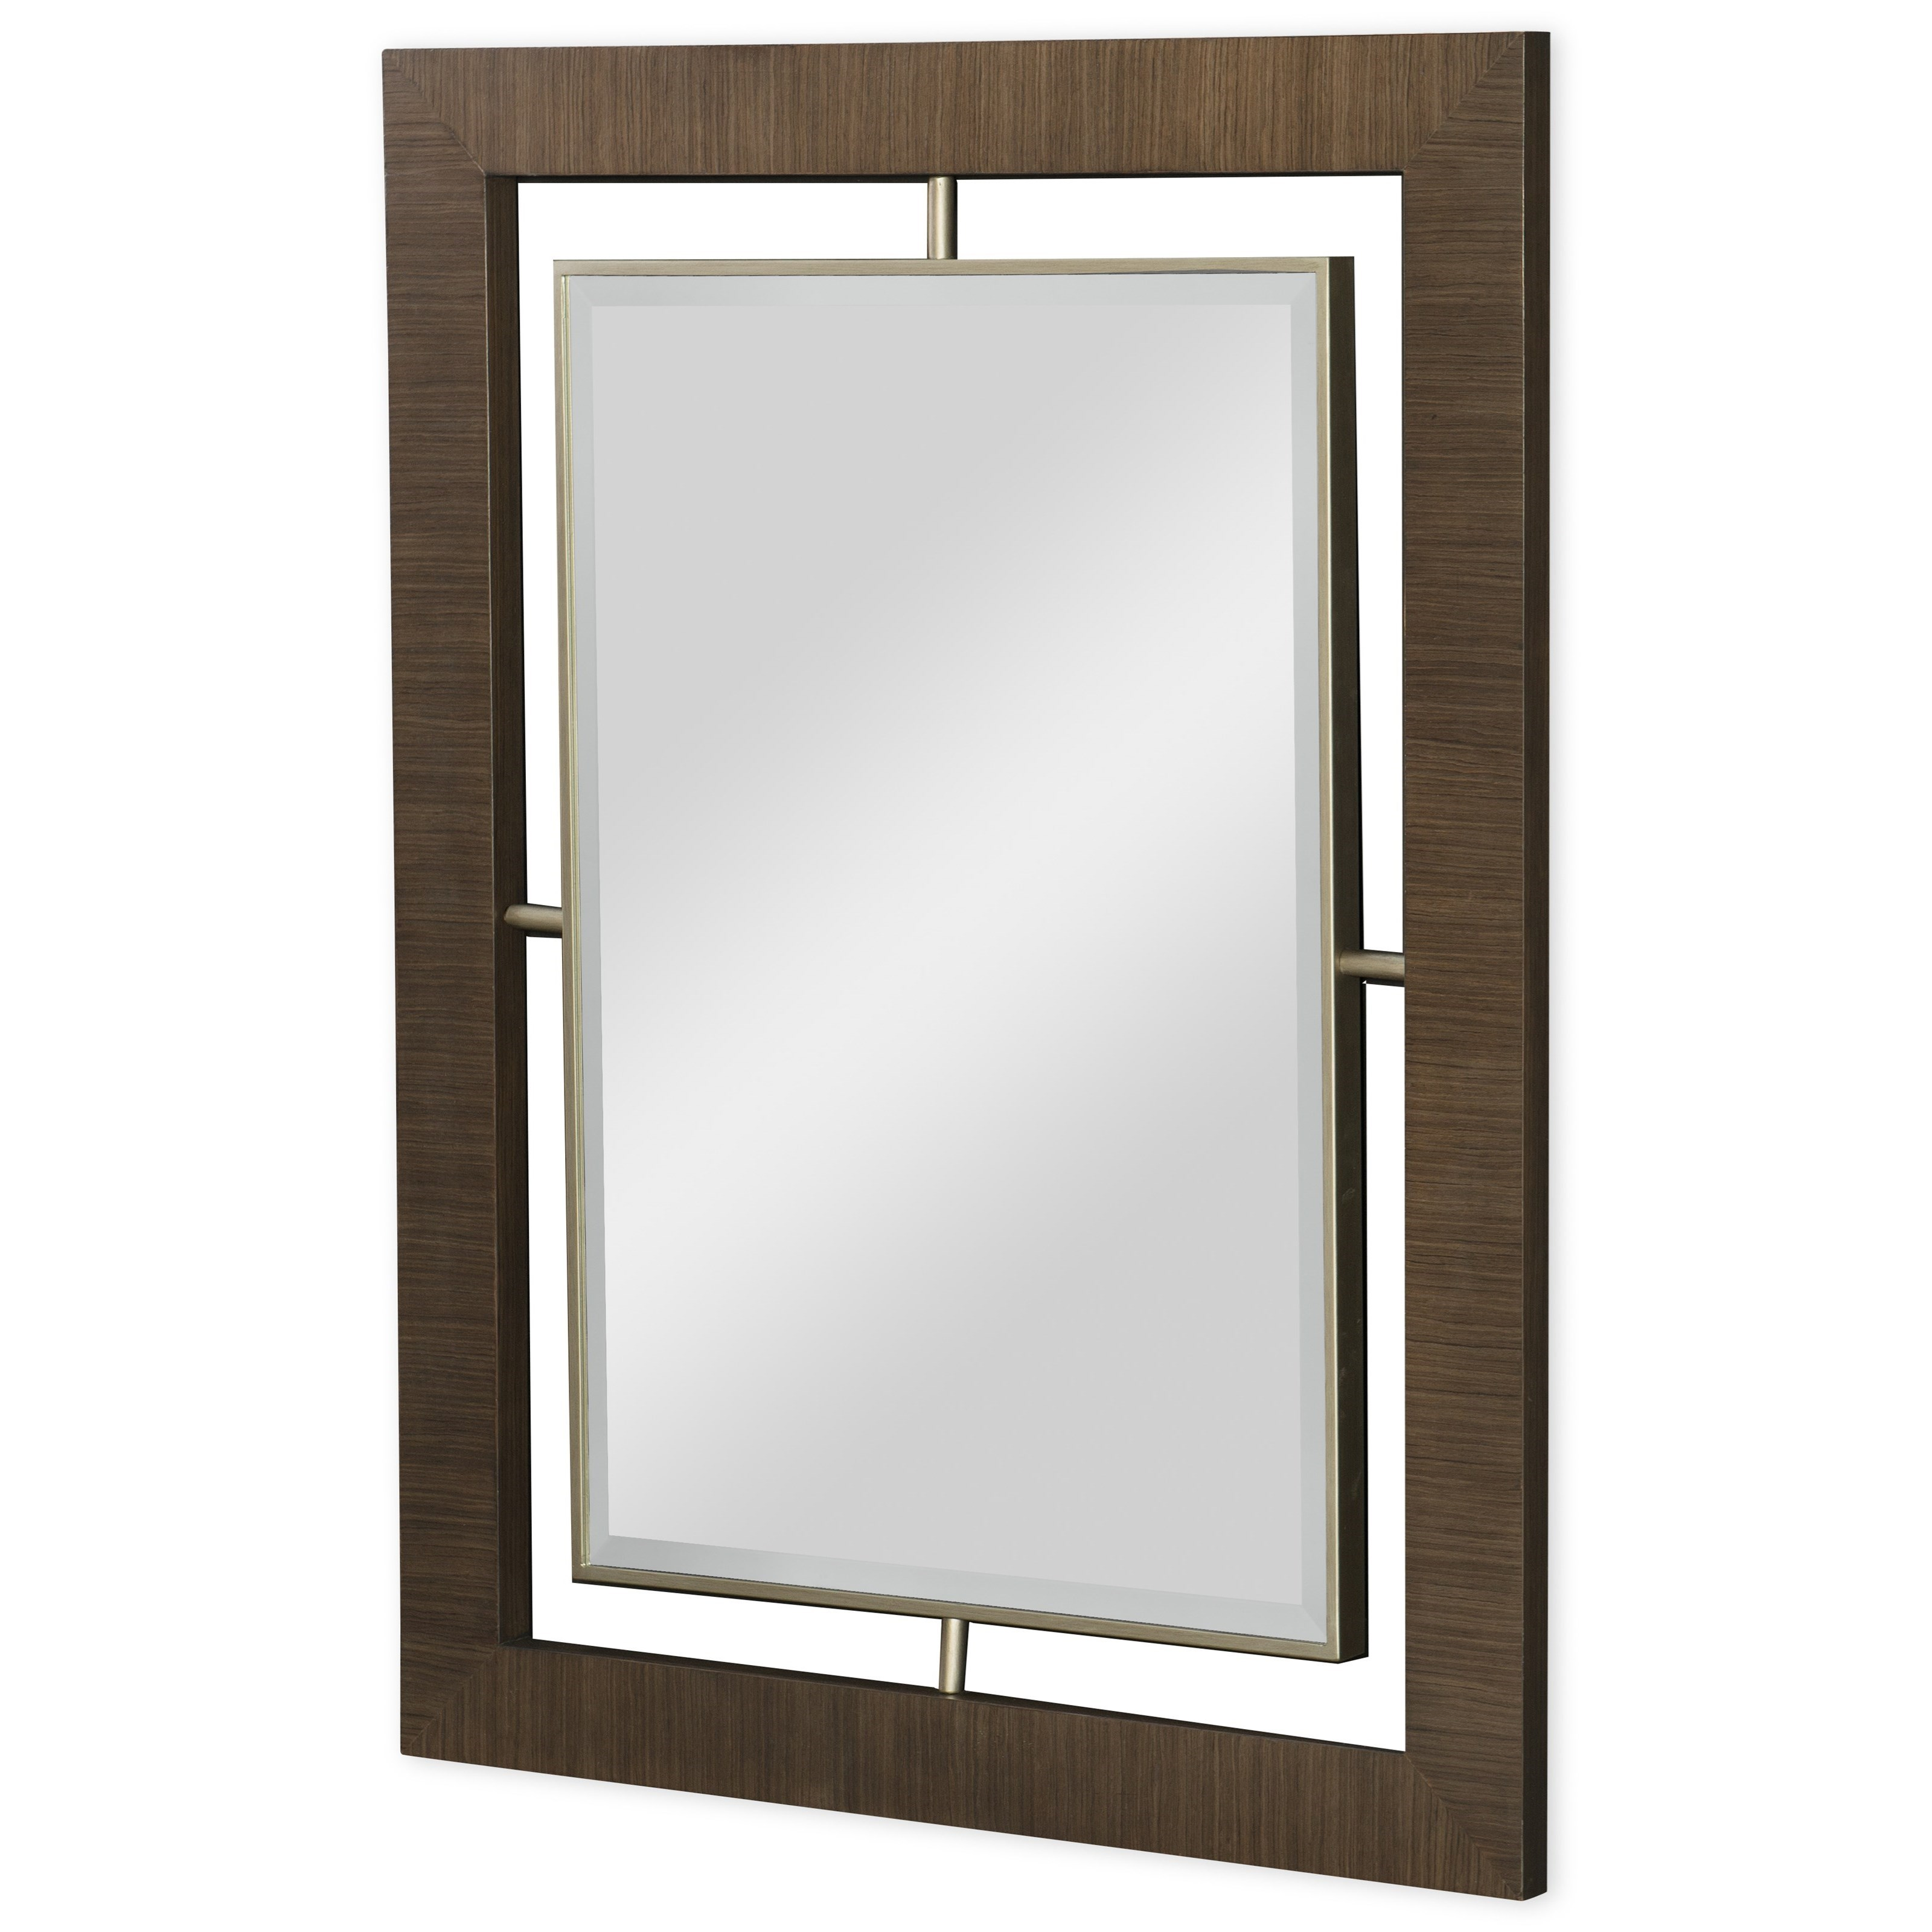 Rachael Ray Home by Legacy Classic Soho Decorative Mirror - Item Number: 6020-0800